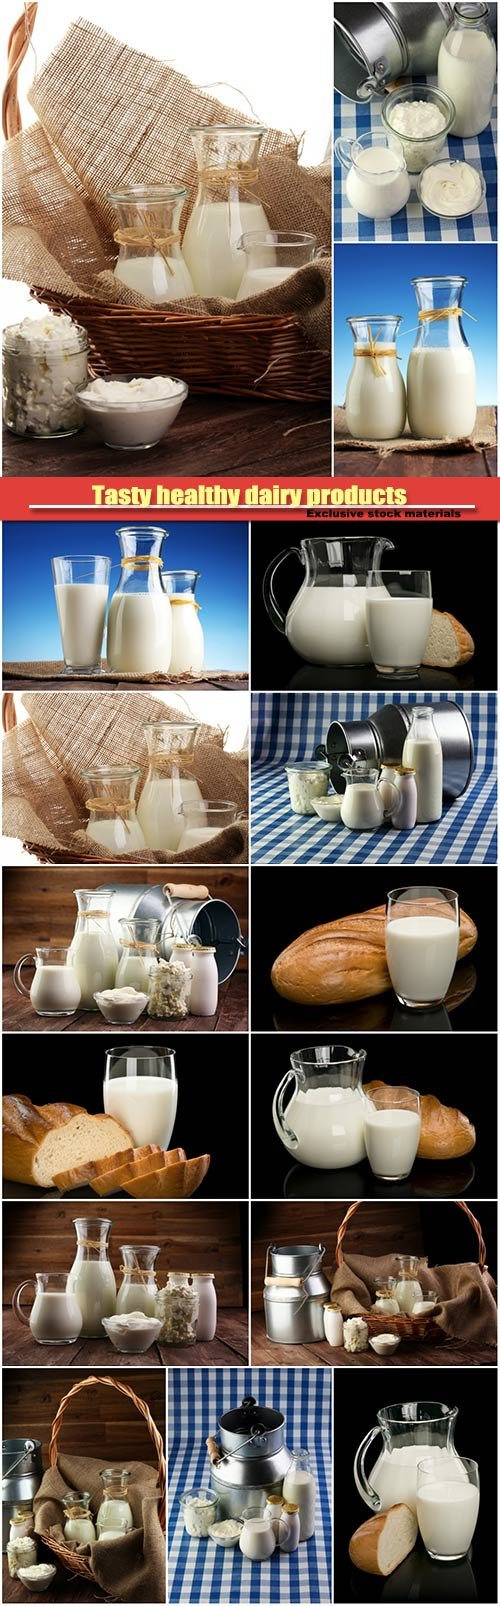 Tasty healthy dairy products, milk products